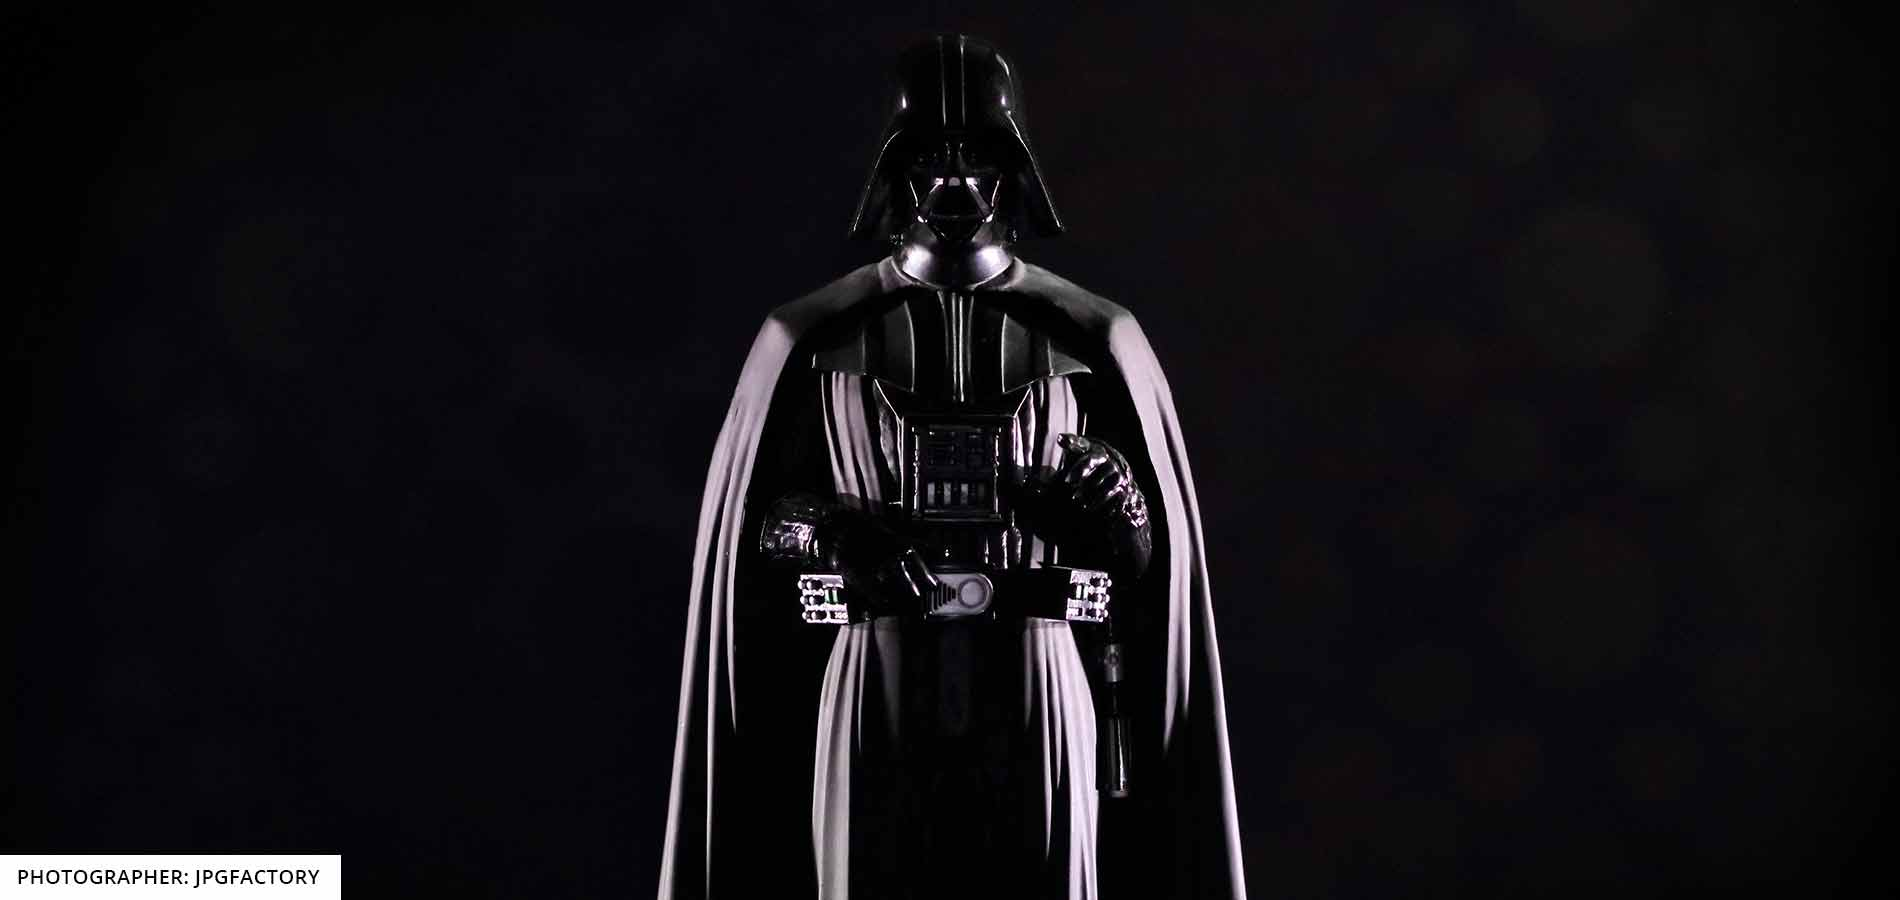 10 reasons Darth Vader was a good Project Manager